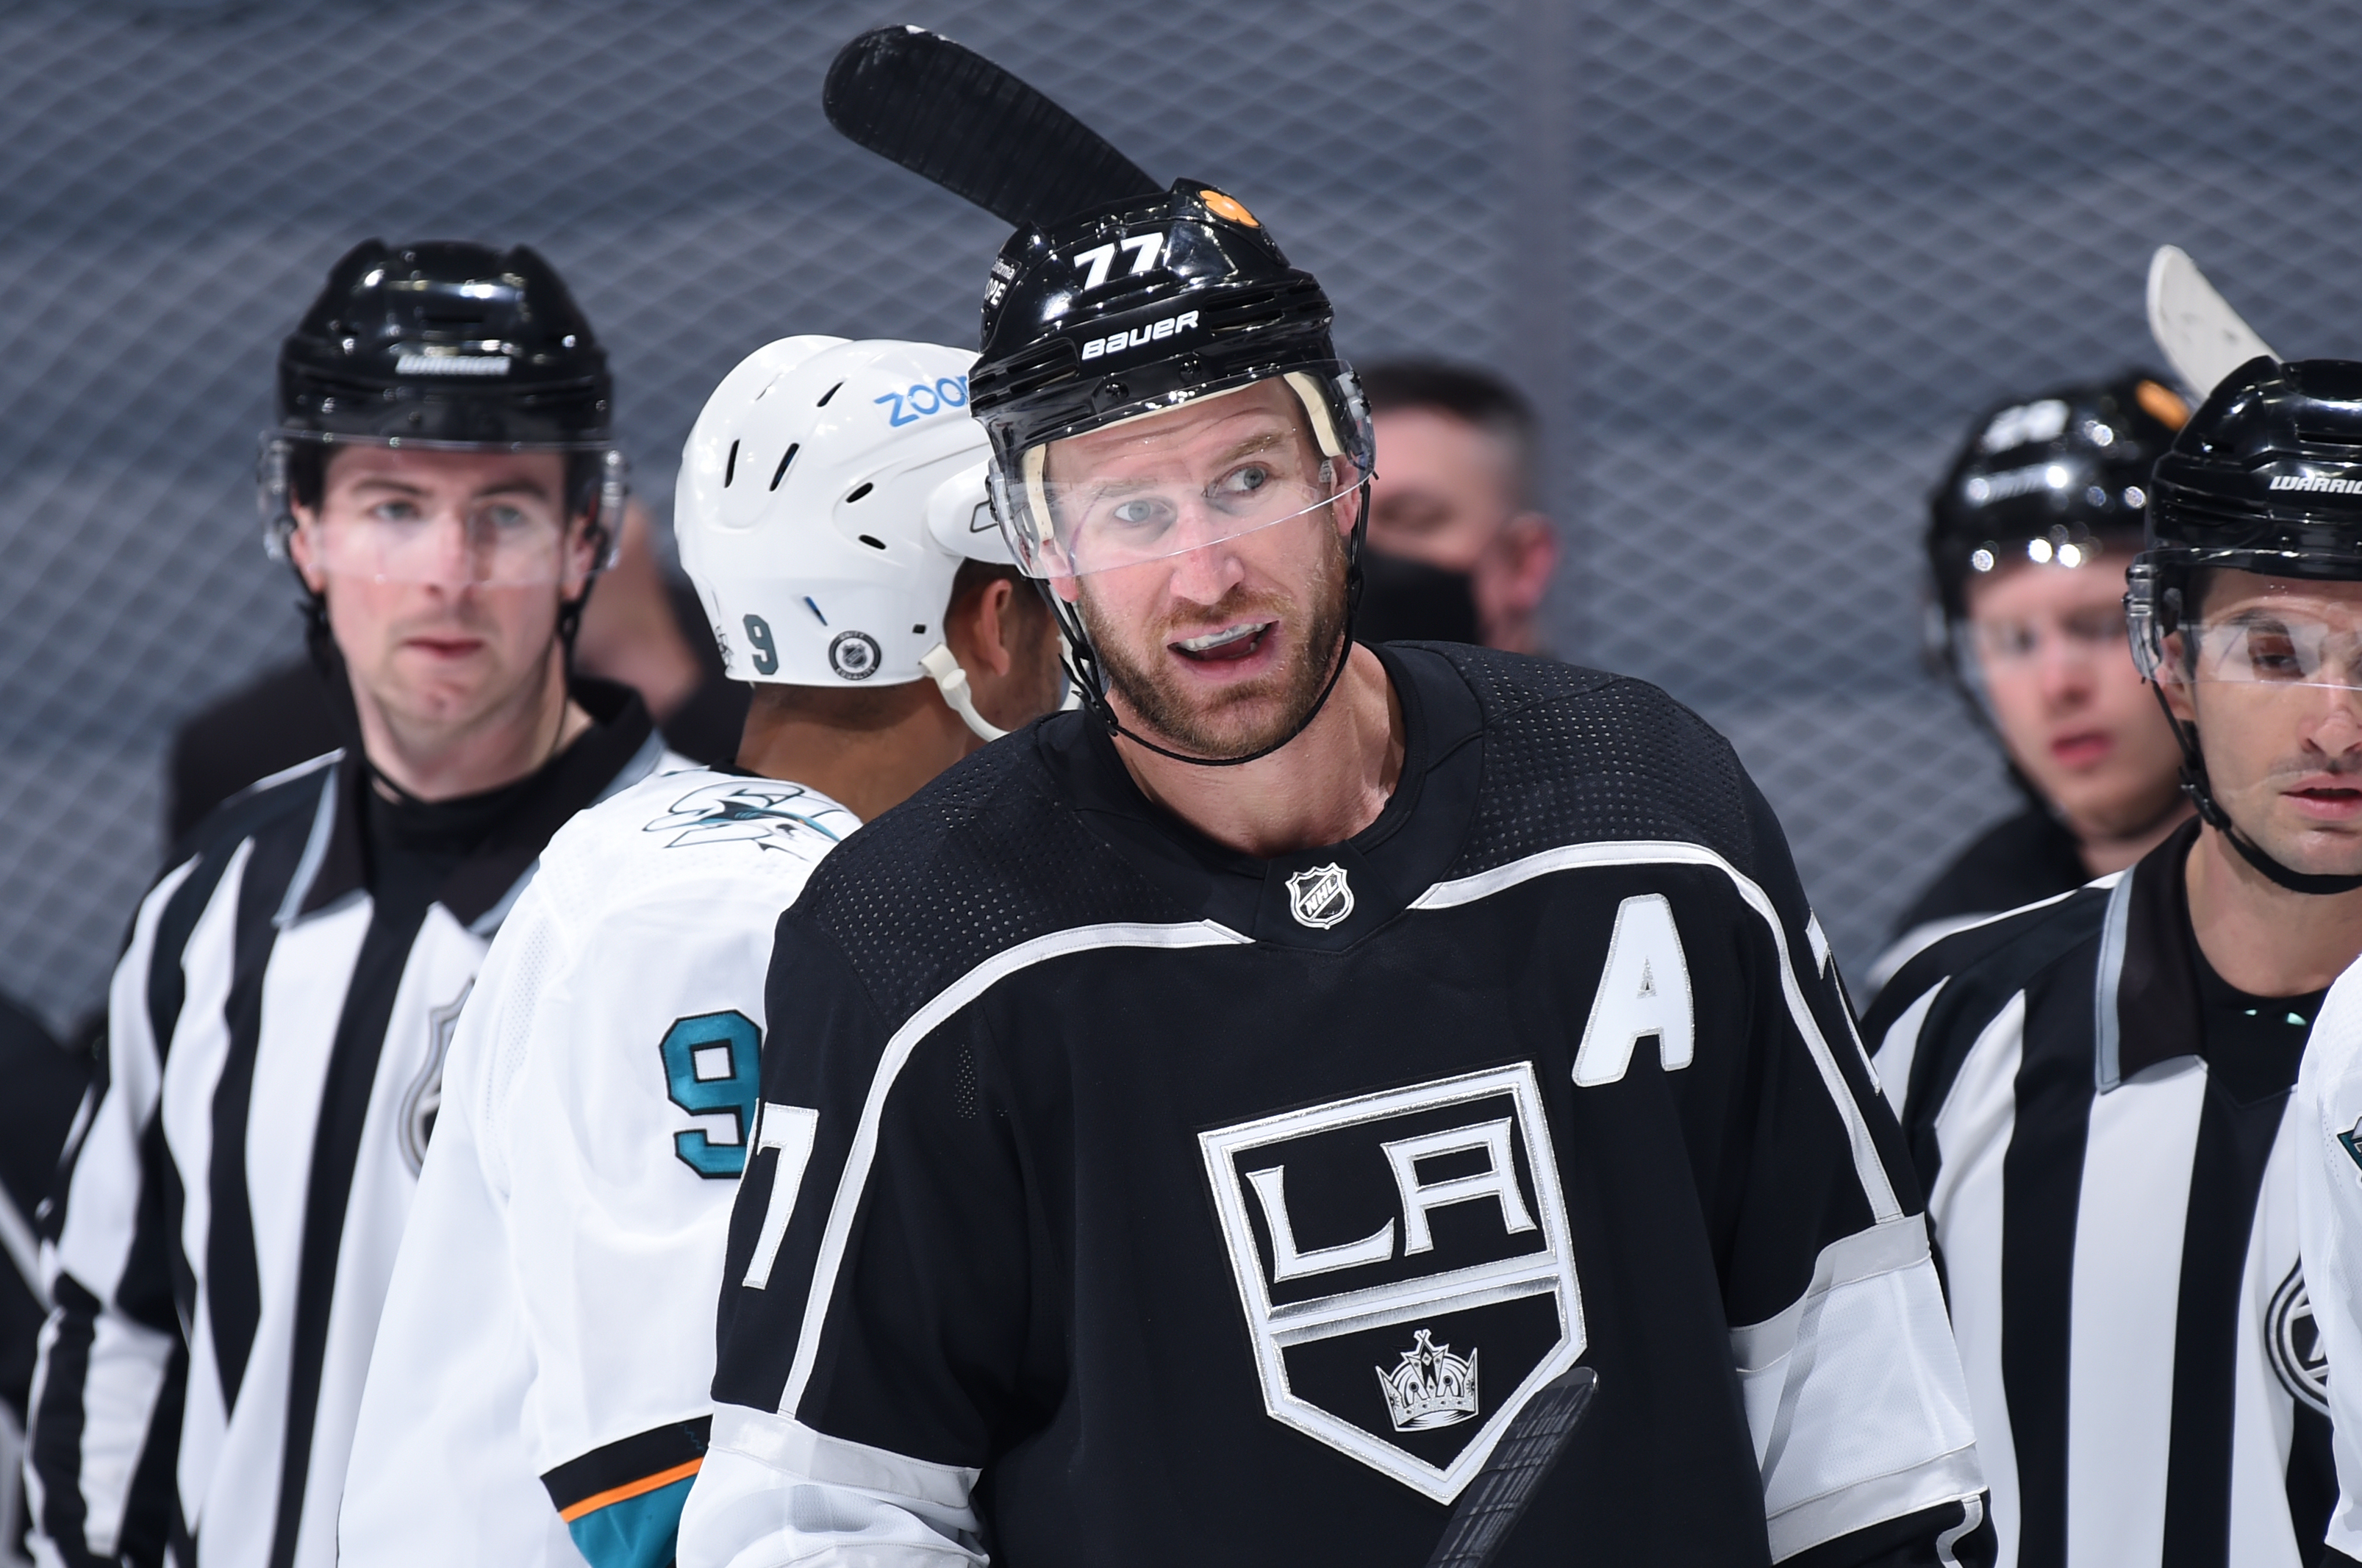 Jeff Carter #77 of the Los Angeles Kings looks on during the second period against the San Jose Sharks at STAPLES Center on April 2, 2021 in Los Angeles, California.